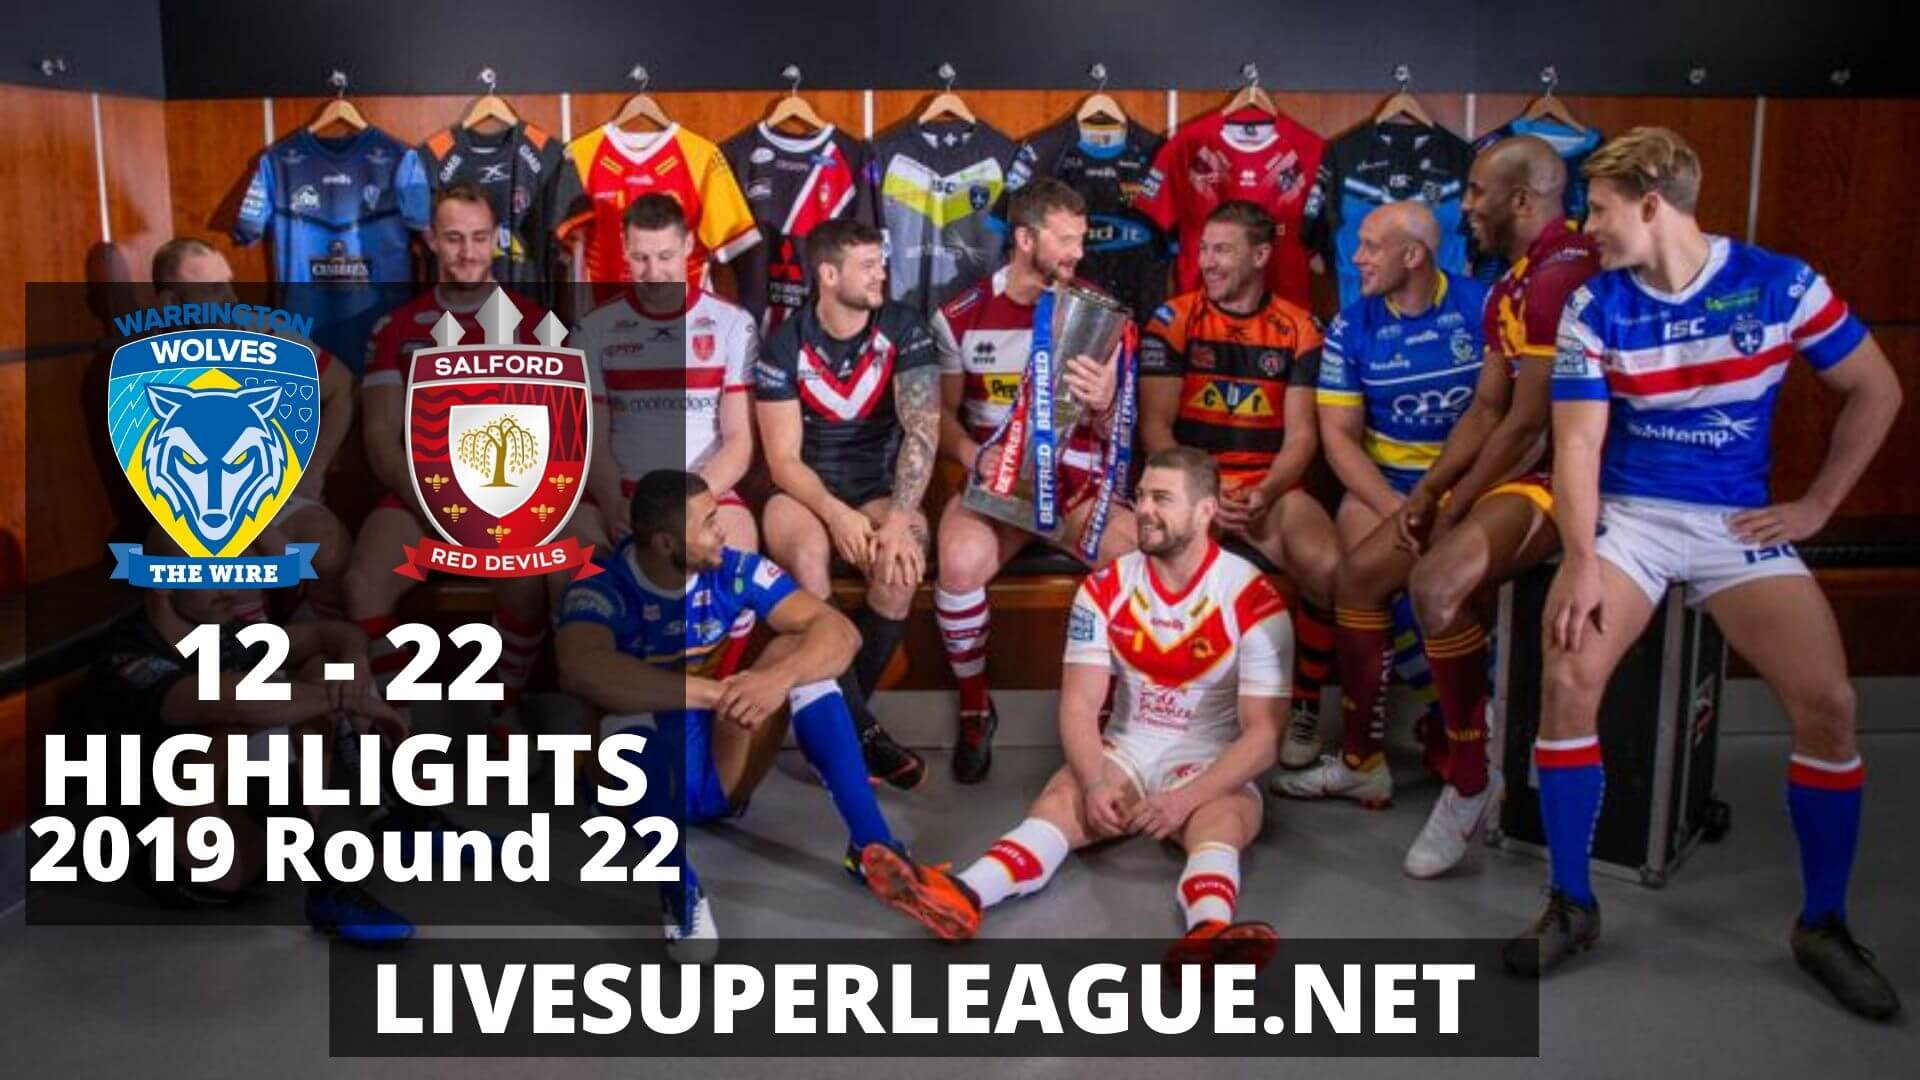 Warrington Wolves Vs Salford Red Devils Highlights 2019 Round 22